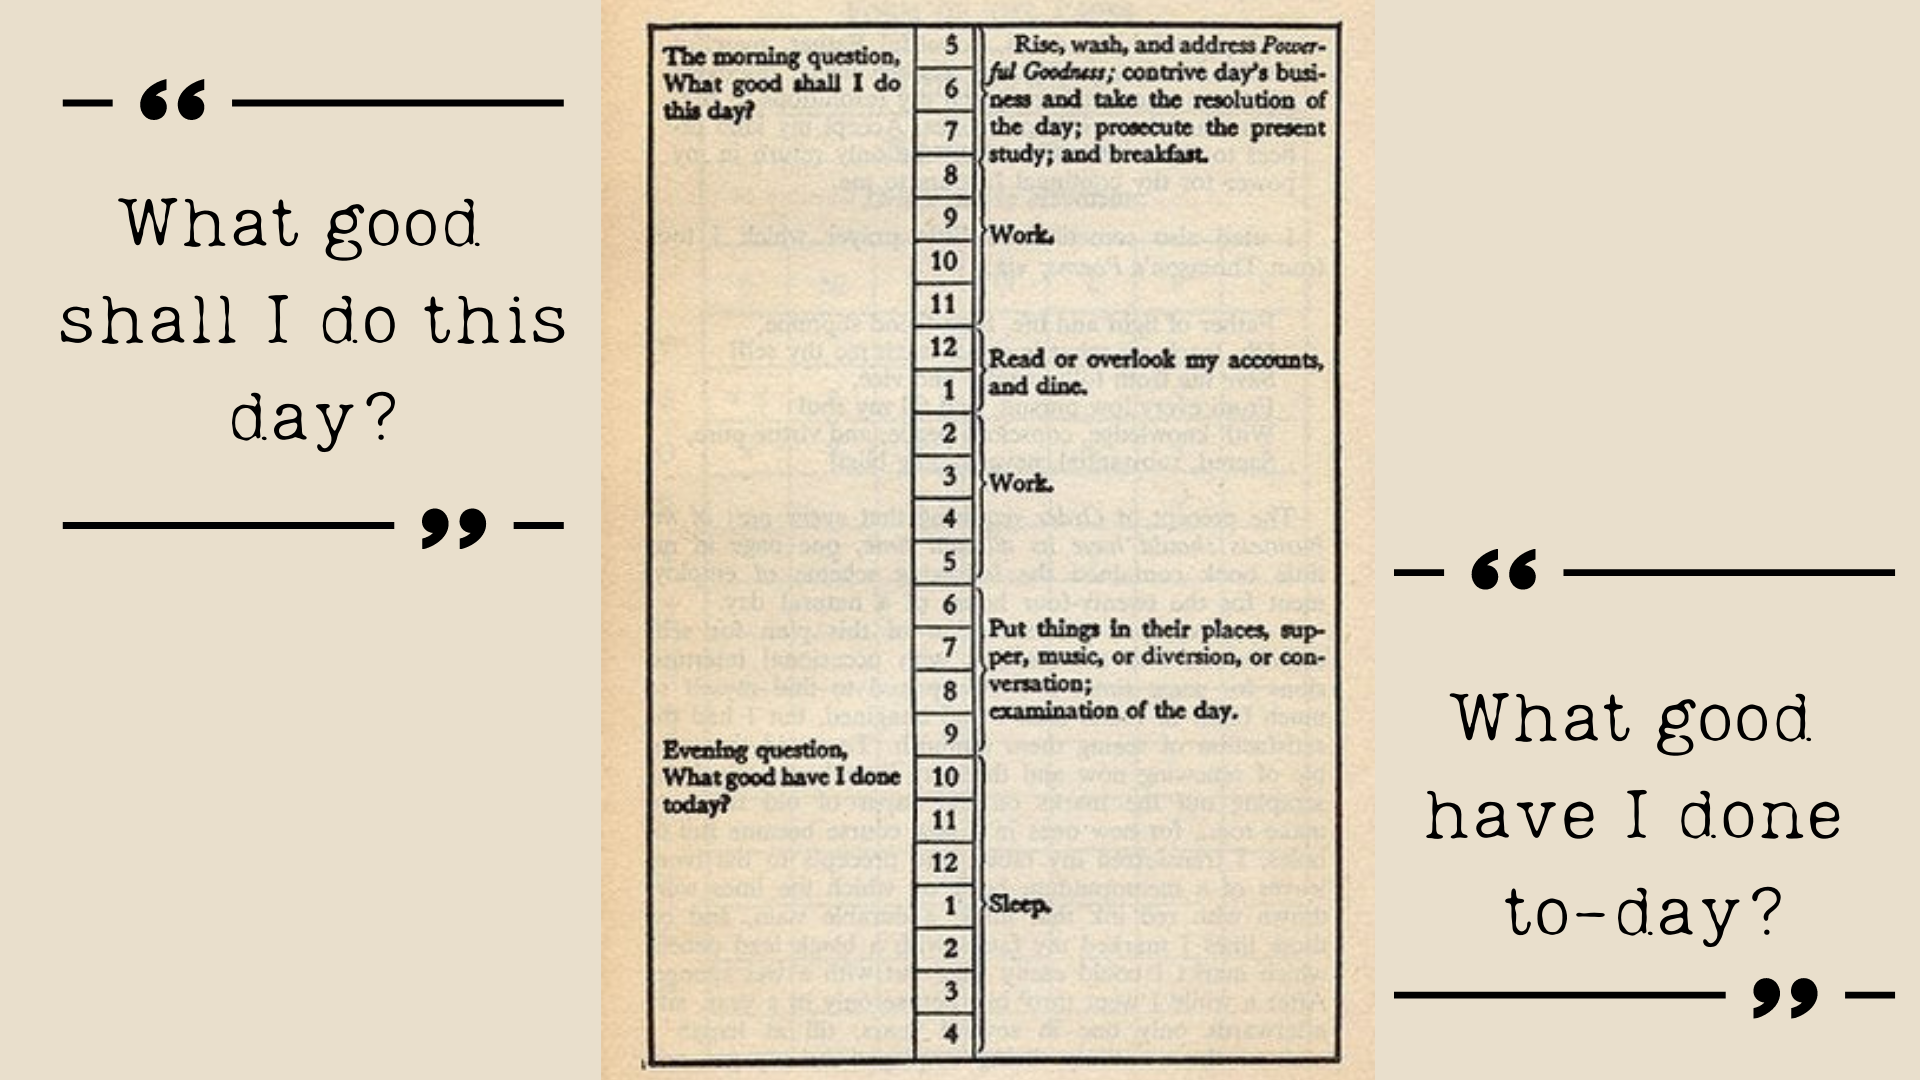 Benjamin Franklin's Daily Schedule from chapter IX of his autobiography In the Public Domain on Project Gutenberg